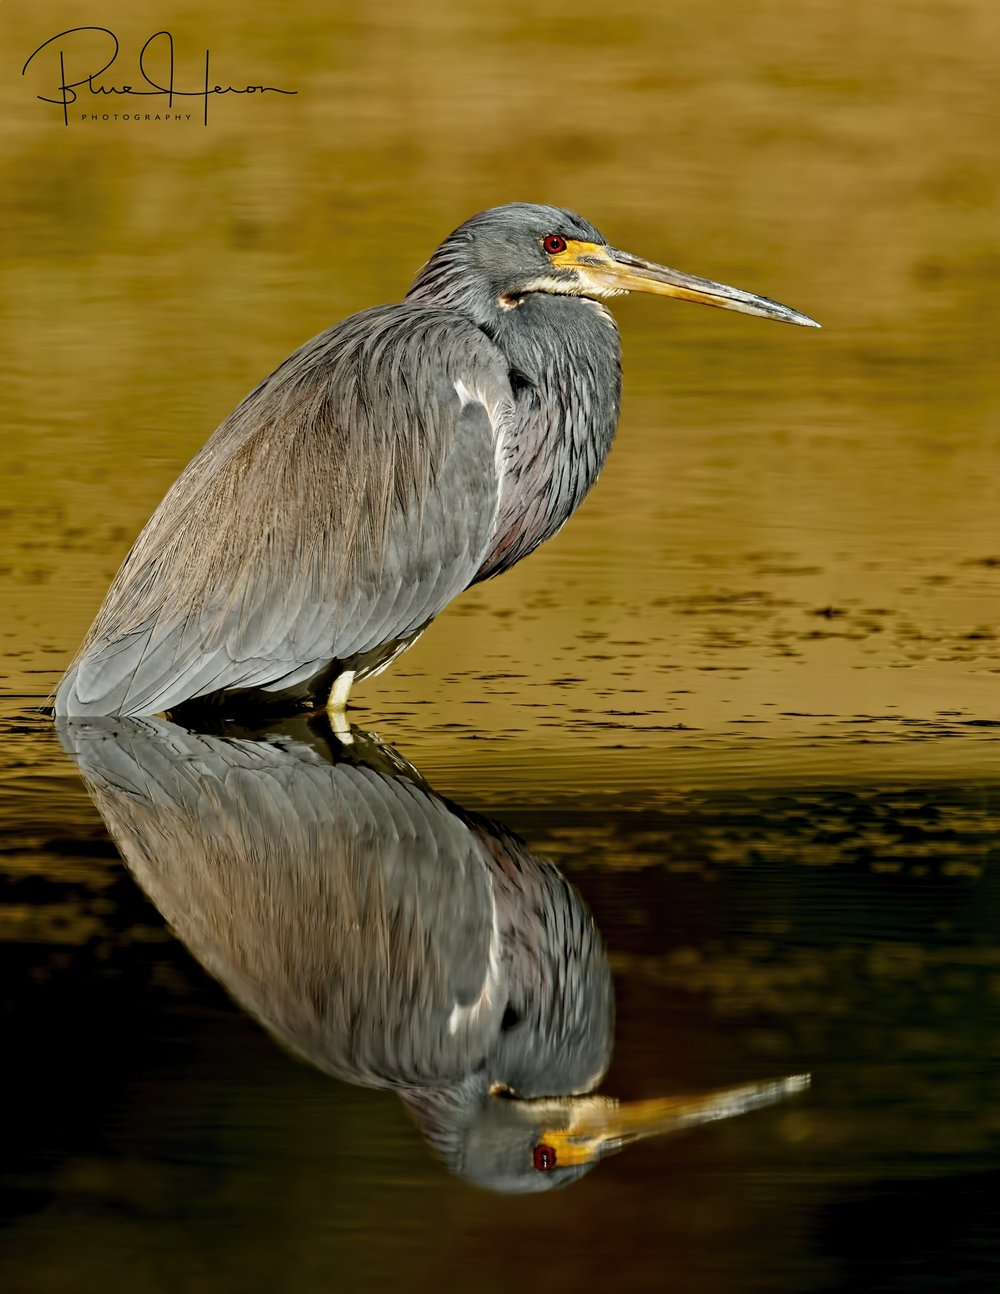 Are there two Tricolored Herons or one?